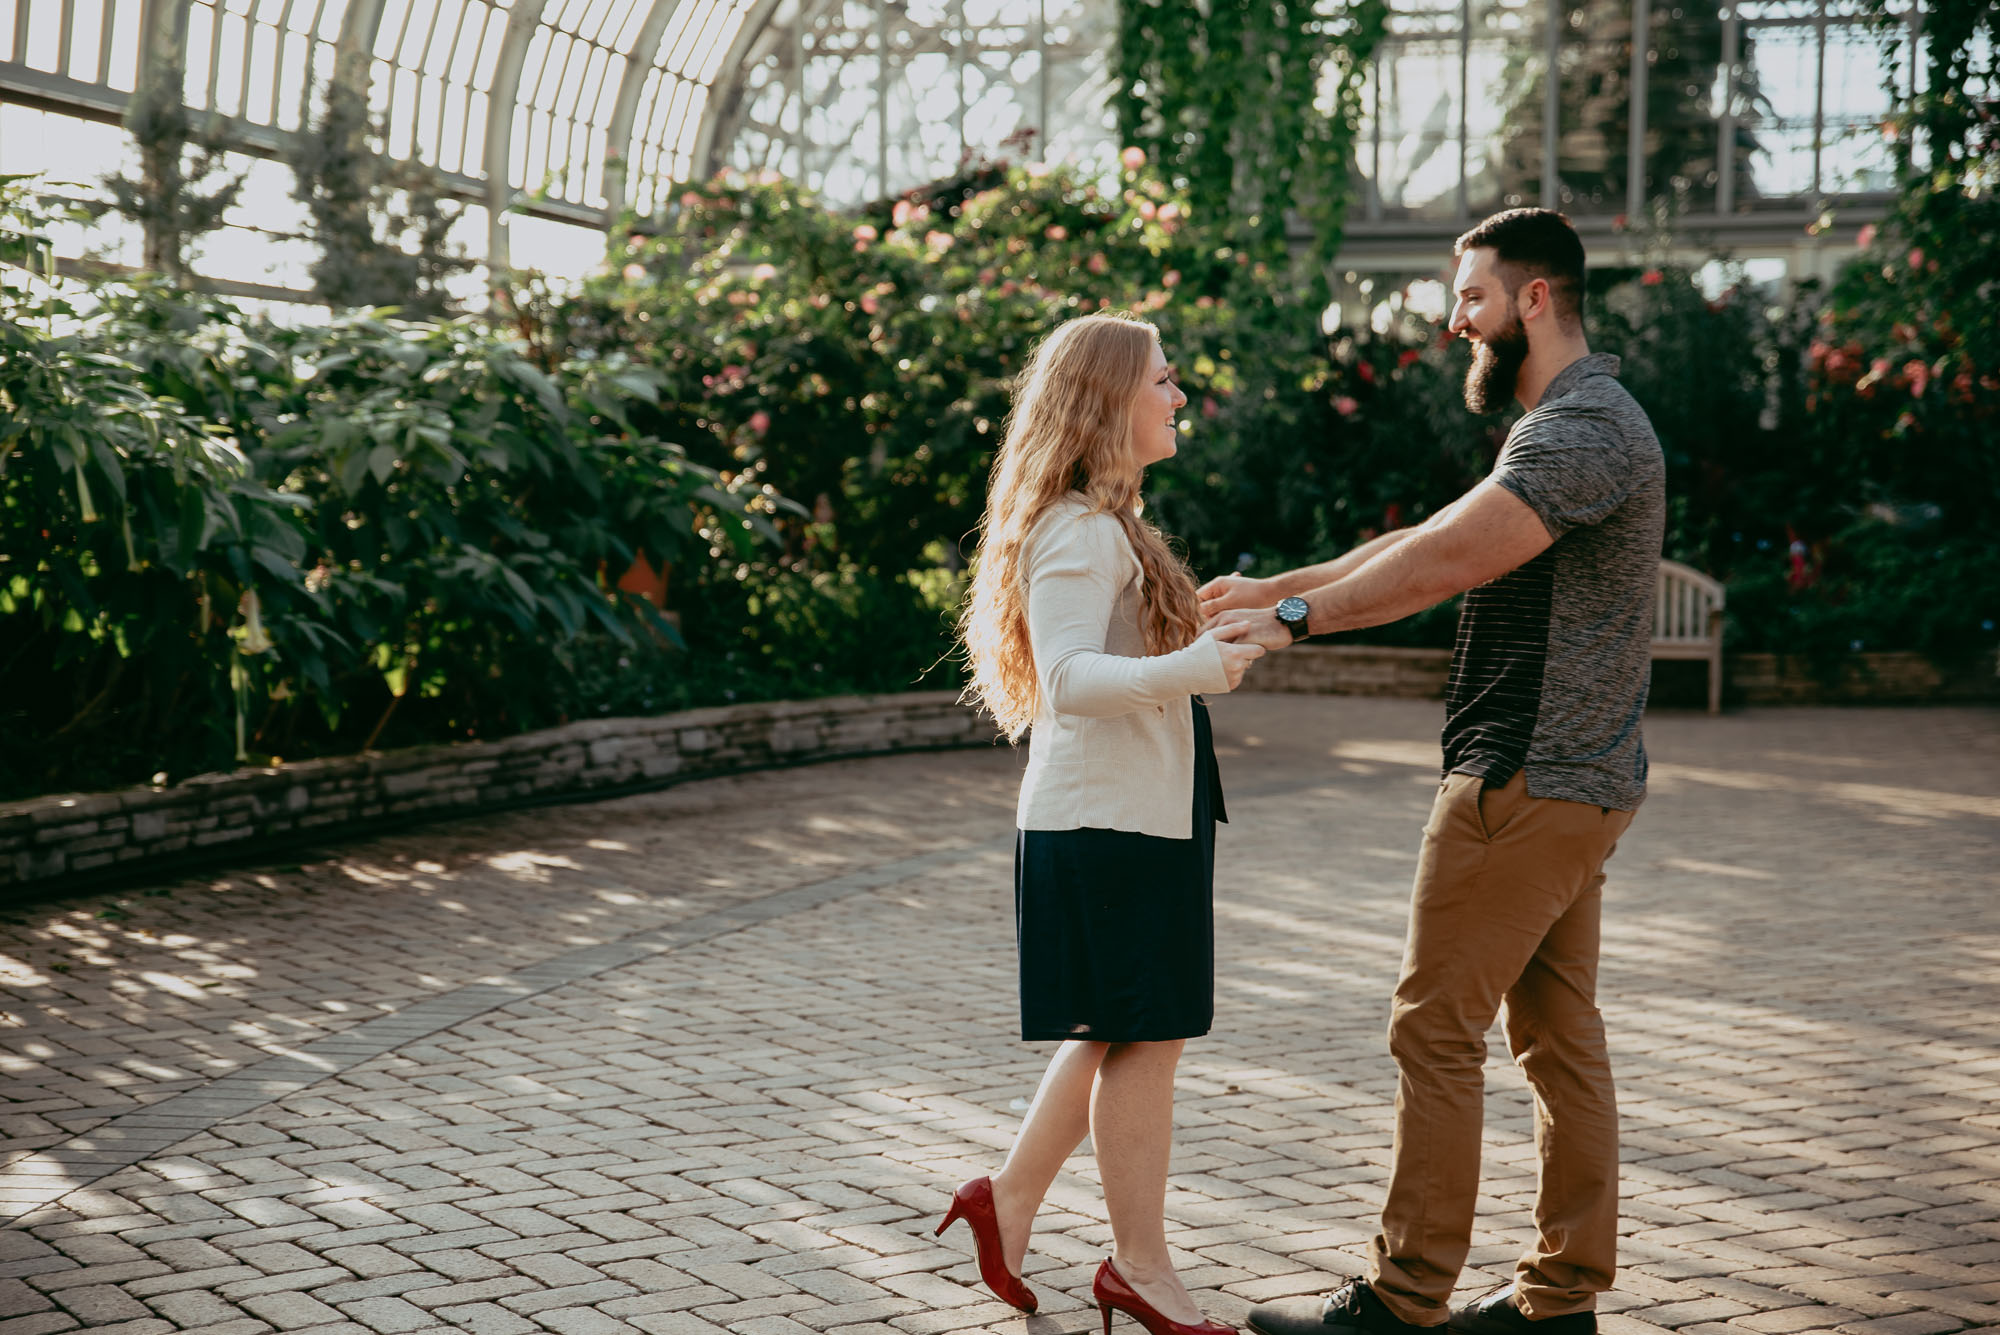 garfield-conservatory-engagement-photos-chicago-il-photographers-25.jpg